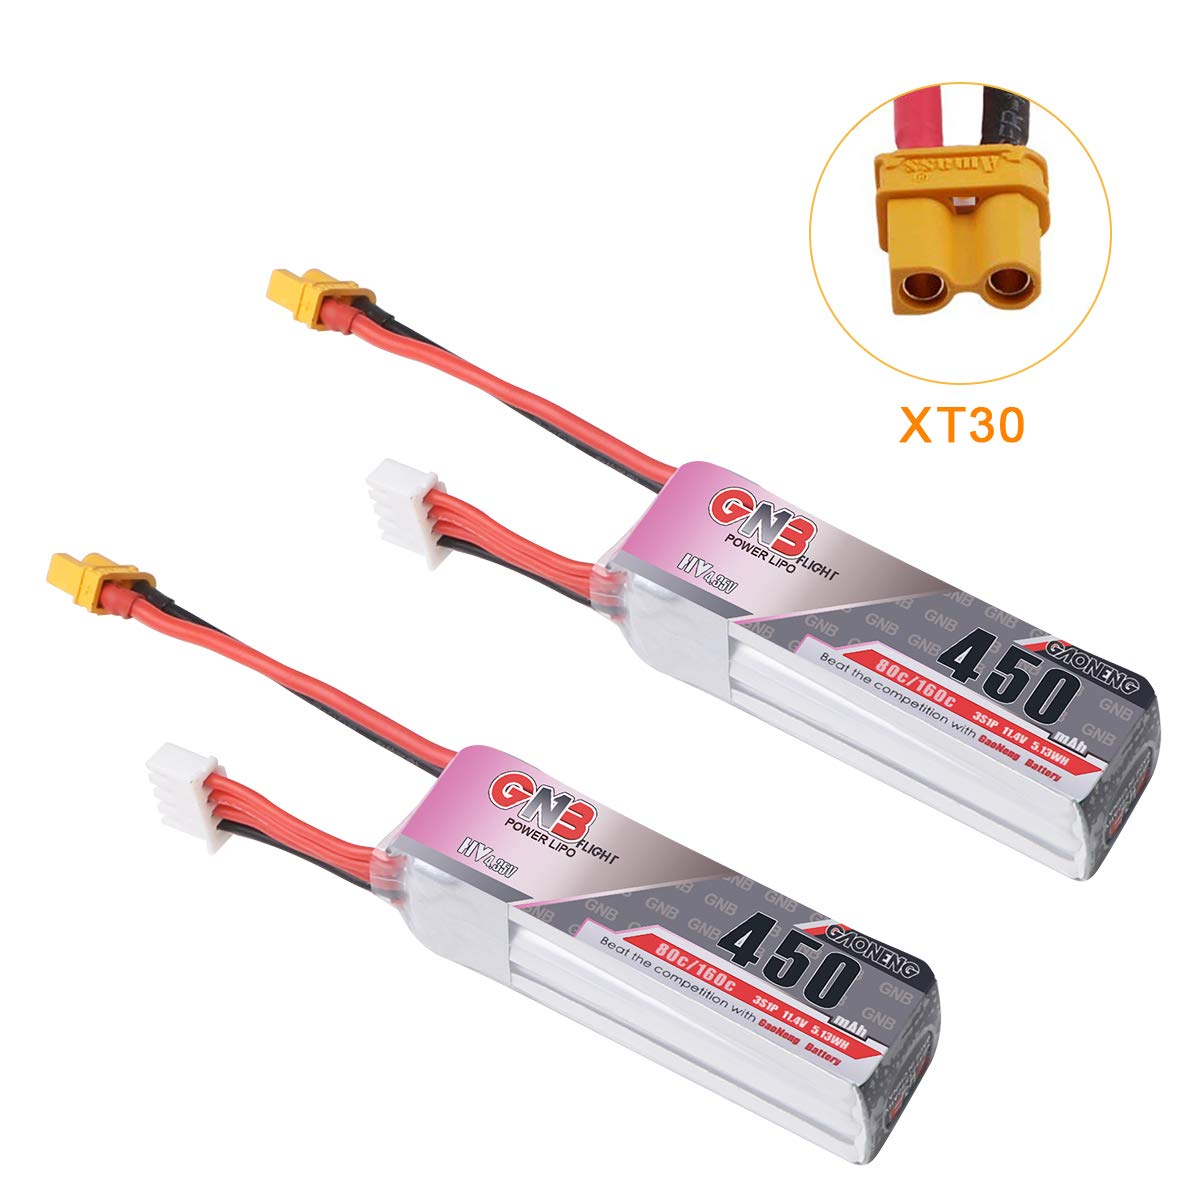 2pcs Gaoneng 450mAh 3S HV 11.4V Lipo Battery 80C XT30 Plug for TurboBee CineBee Whoop Beta85X Micro FPV Racing Drone Quadcopter by Crazepony